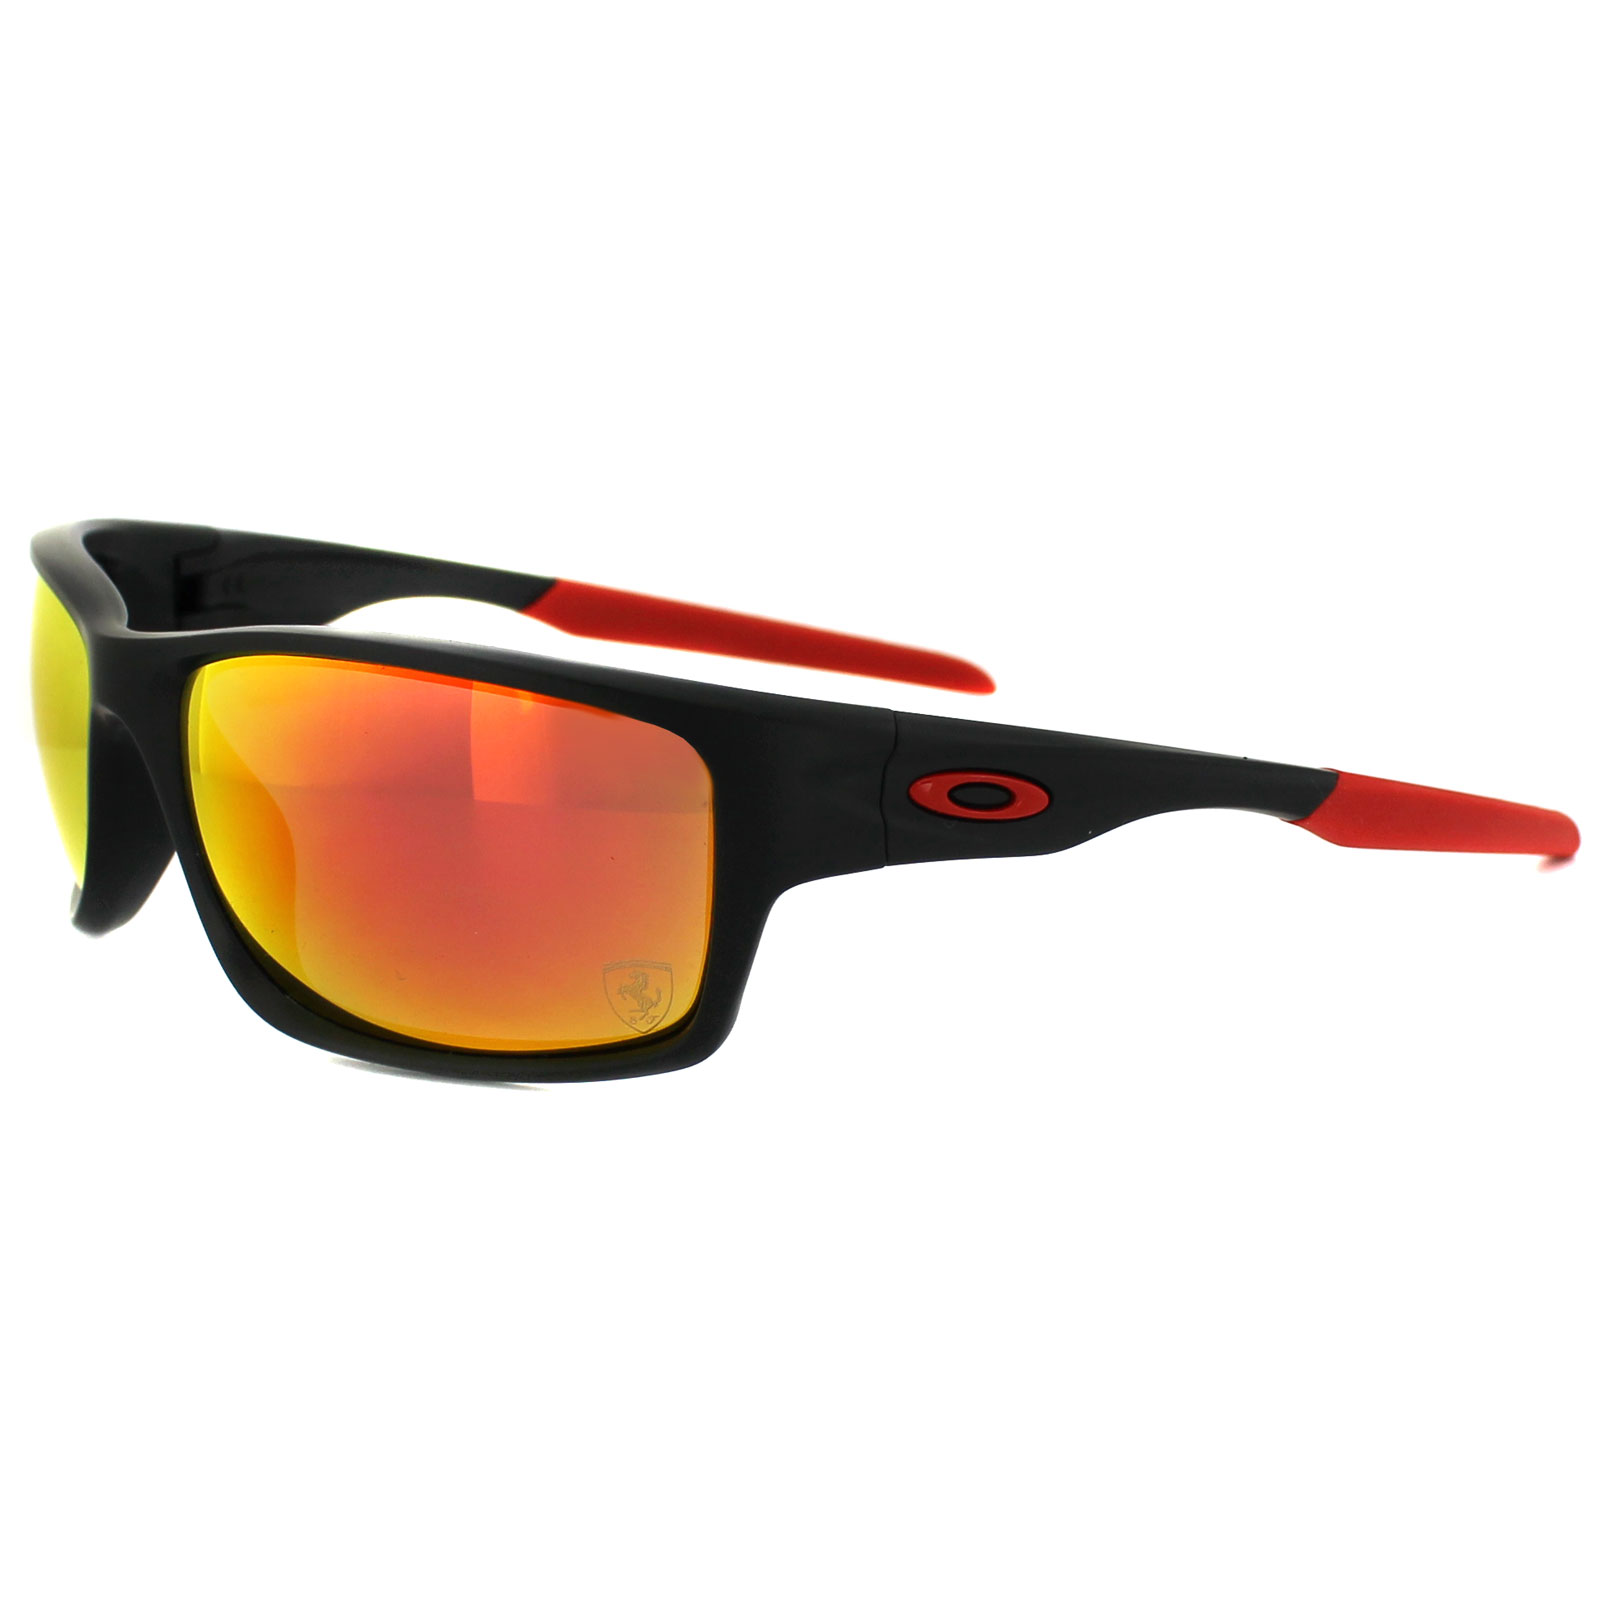 8e229bcfb0 Oakley Sunglasses Canteen 9225-06 Ferrari Matt Black Ruby Iridium Polarized  Thumbnail 1 ...